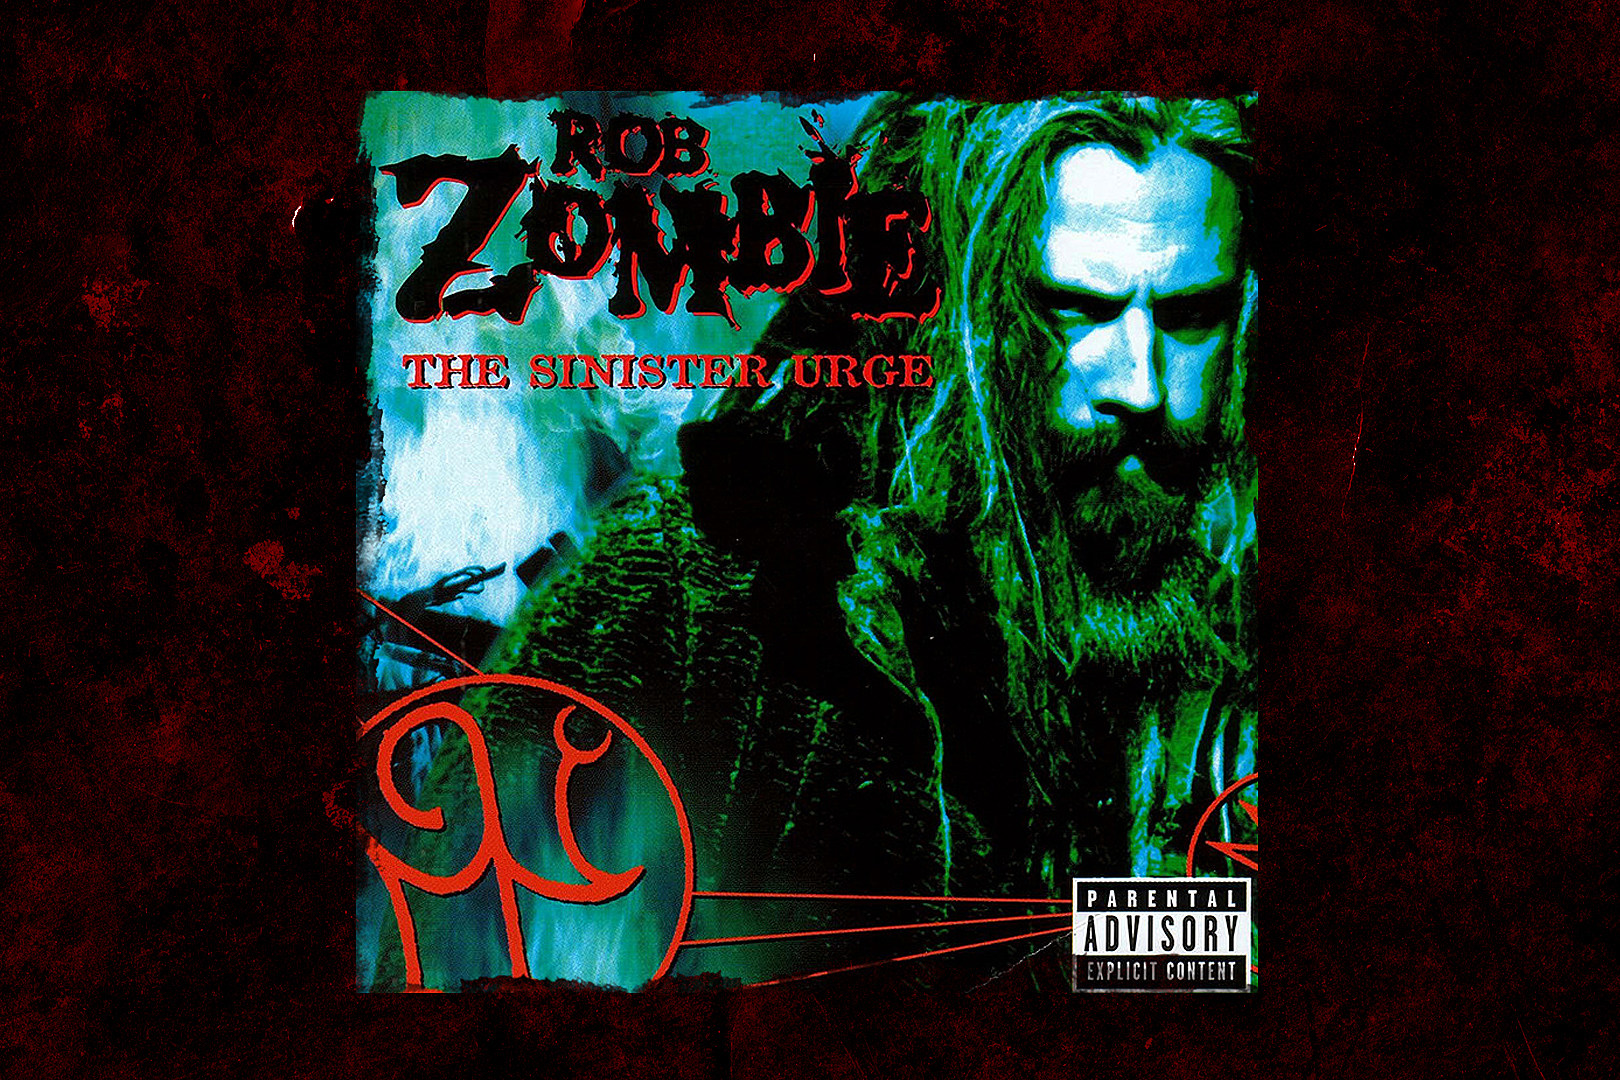 18 Years Ago: Rob Zombie Releases 'The Sinister Urge'